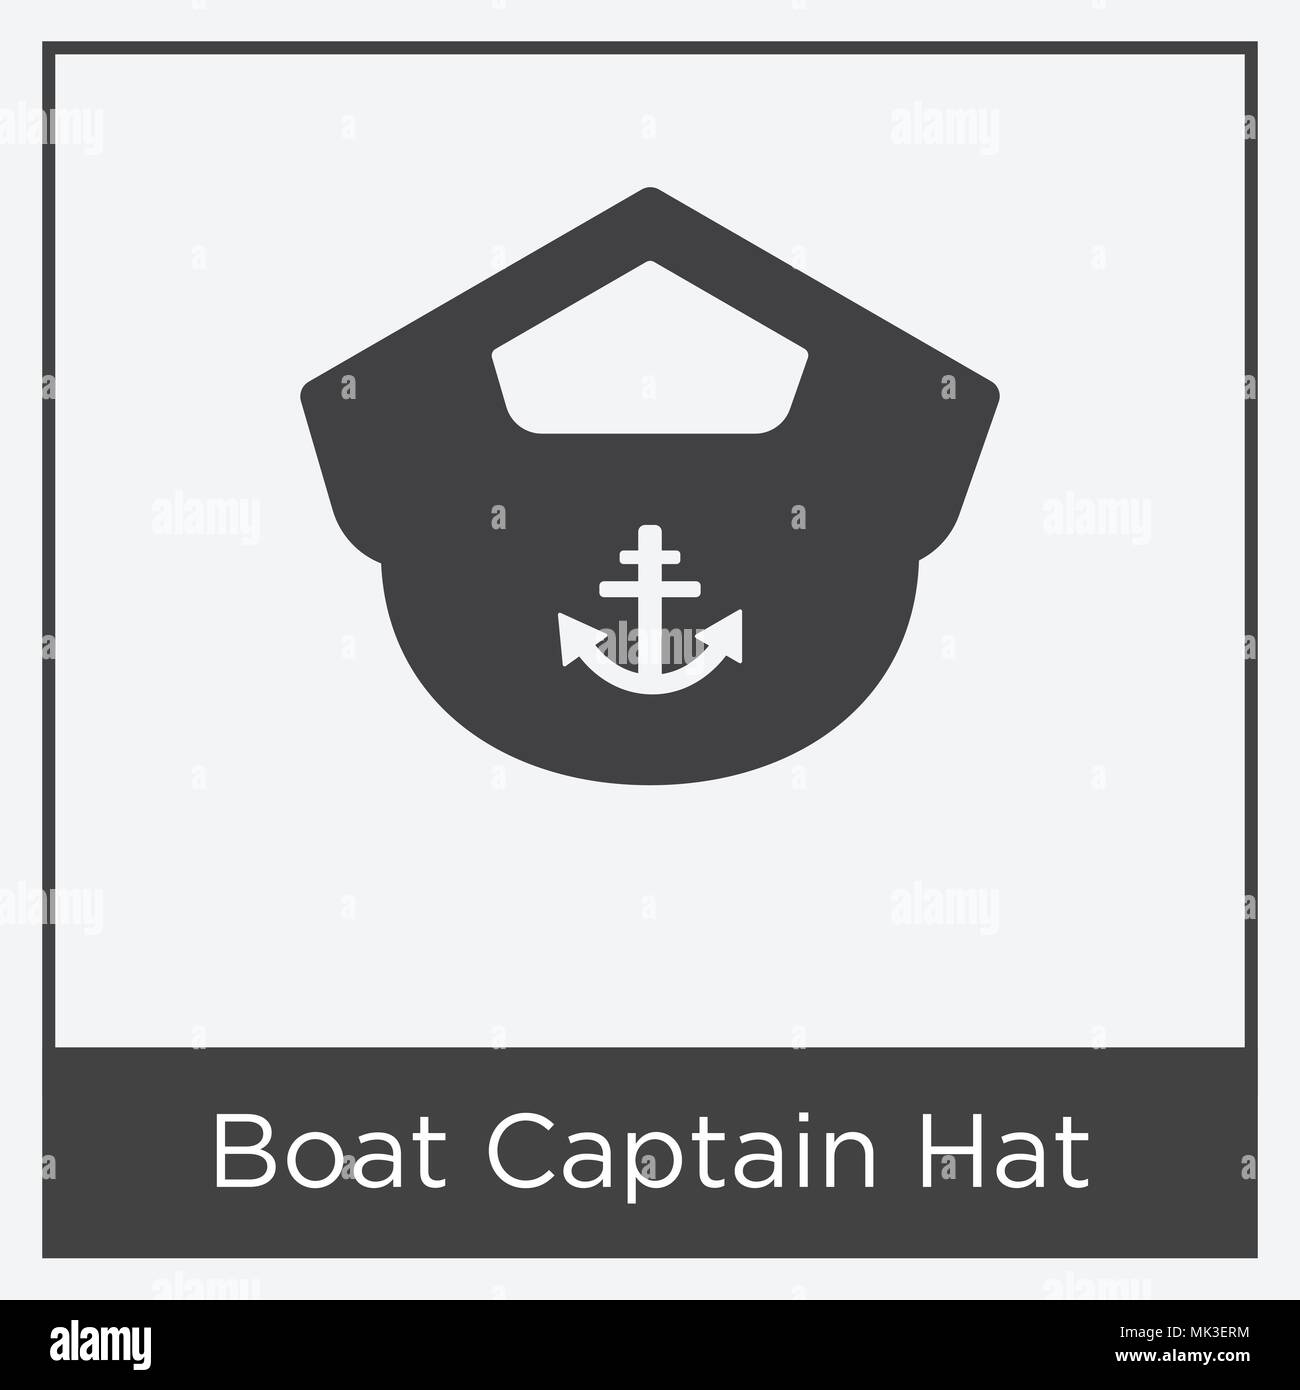 5e20666e591 Boat Captain Hat icon isolated on white background with gray frame ...